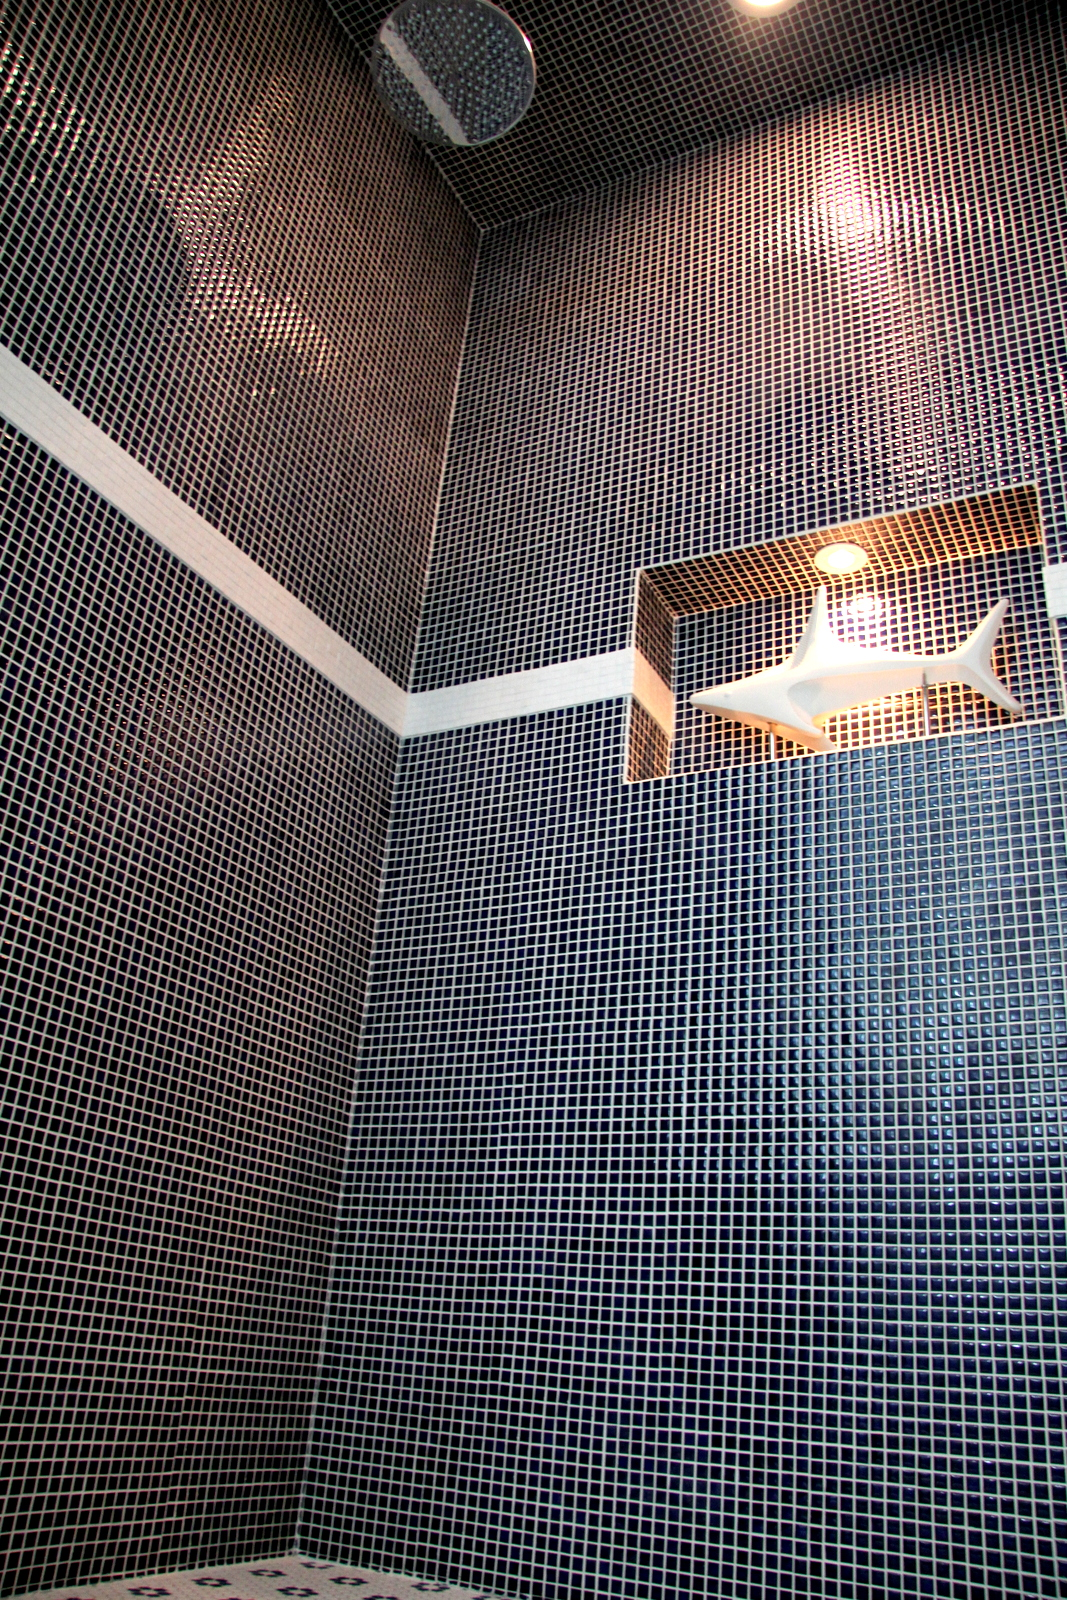 Tiled Showers and wonderful built in shelves can provide comfort and fun, while remaining elegant coastal baths from Thornhill Construction.